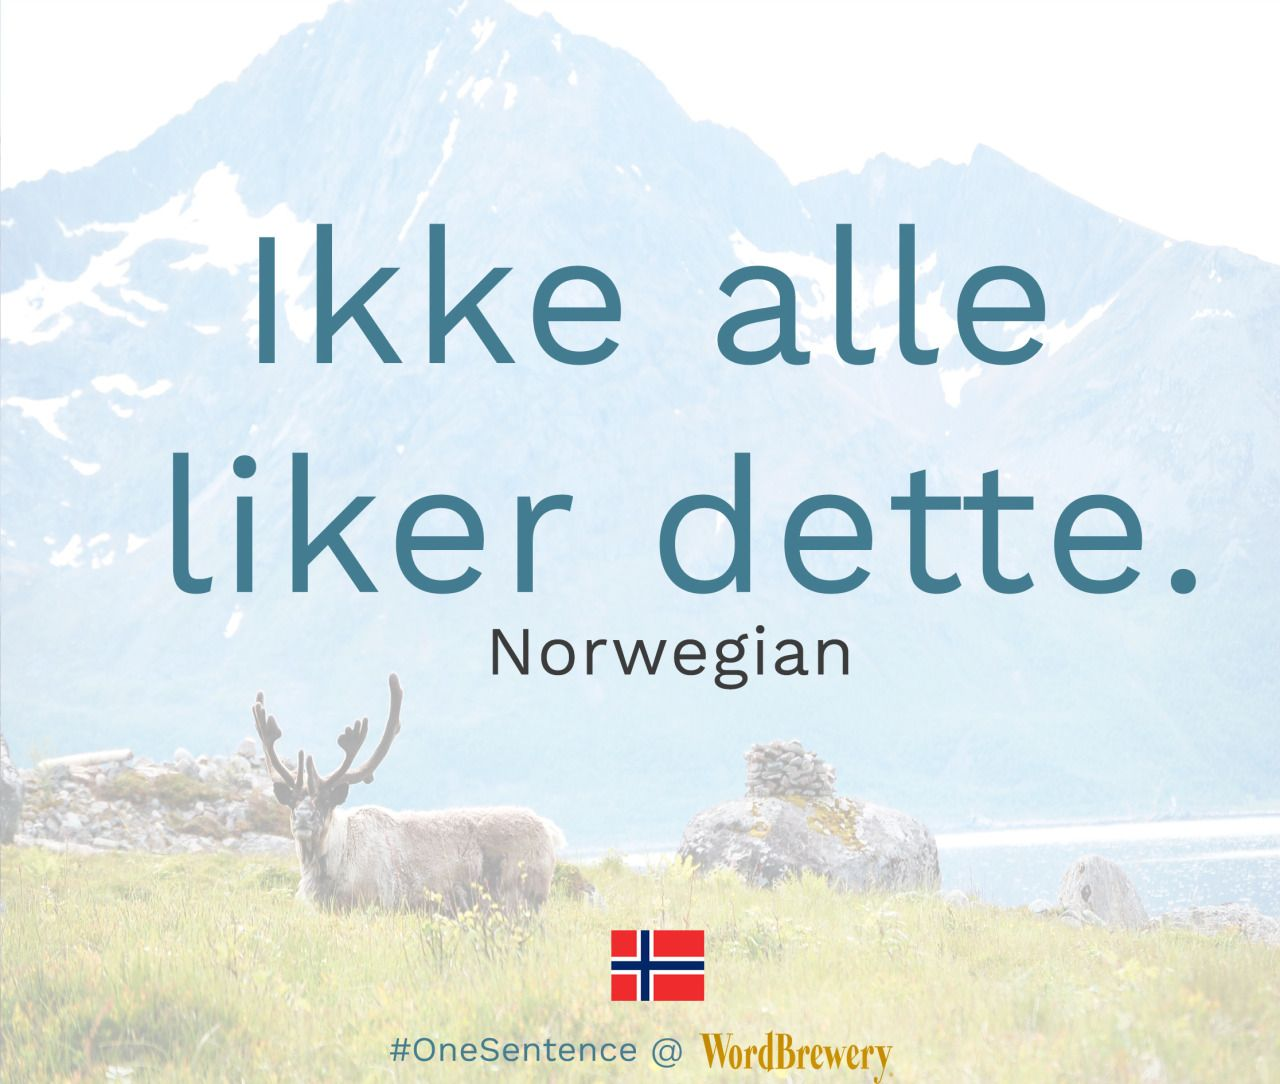 Ikke Alle Liker Dette Source Klar Tale Useful Words And Phrases Ikke Not Alle Everyone Liker Likes Det Norway Language Learning Languages Language